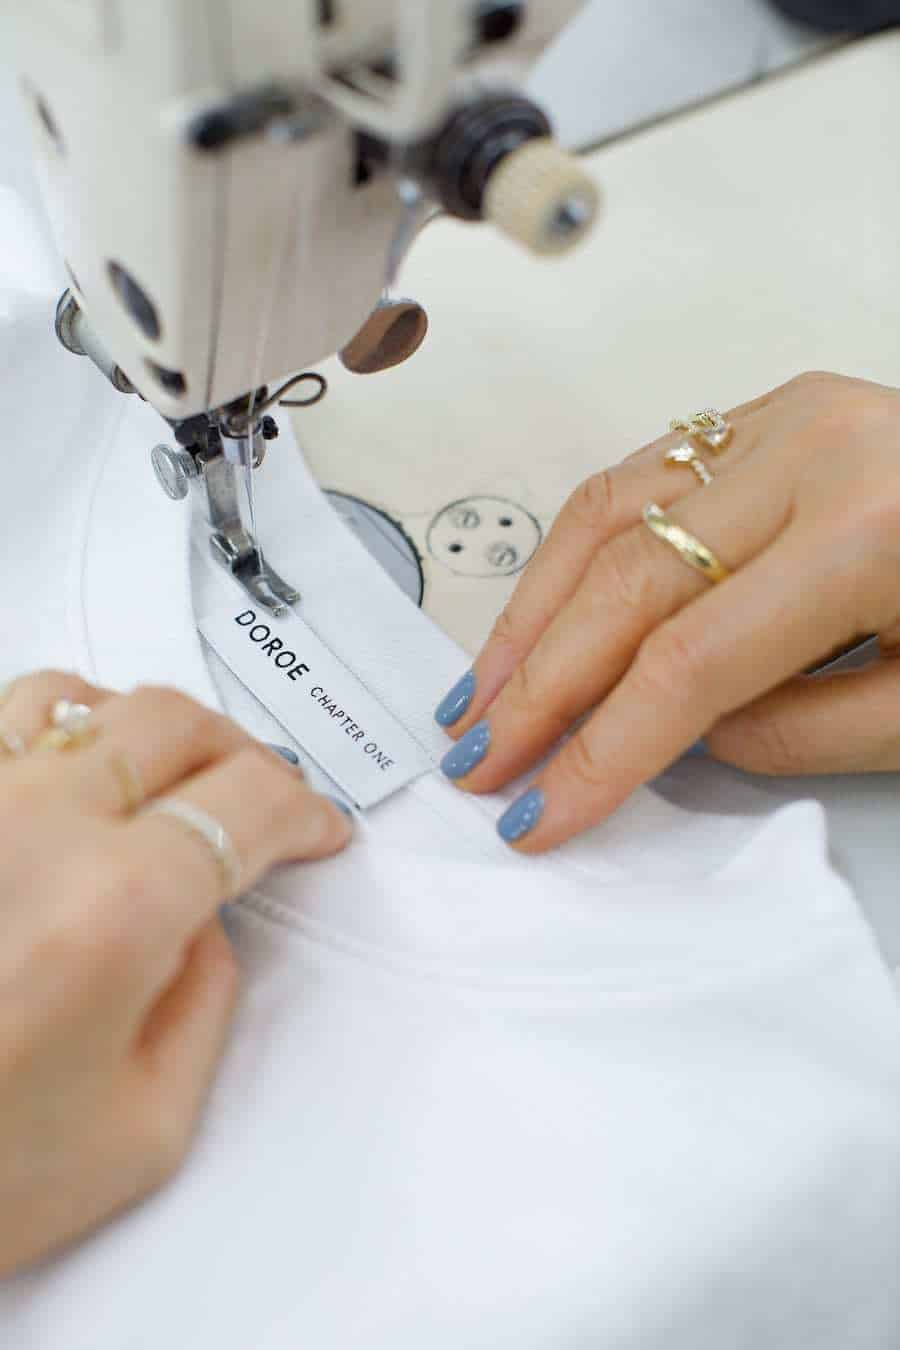 Clothes-are-Made-by-Human-Hands